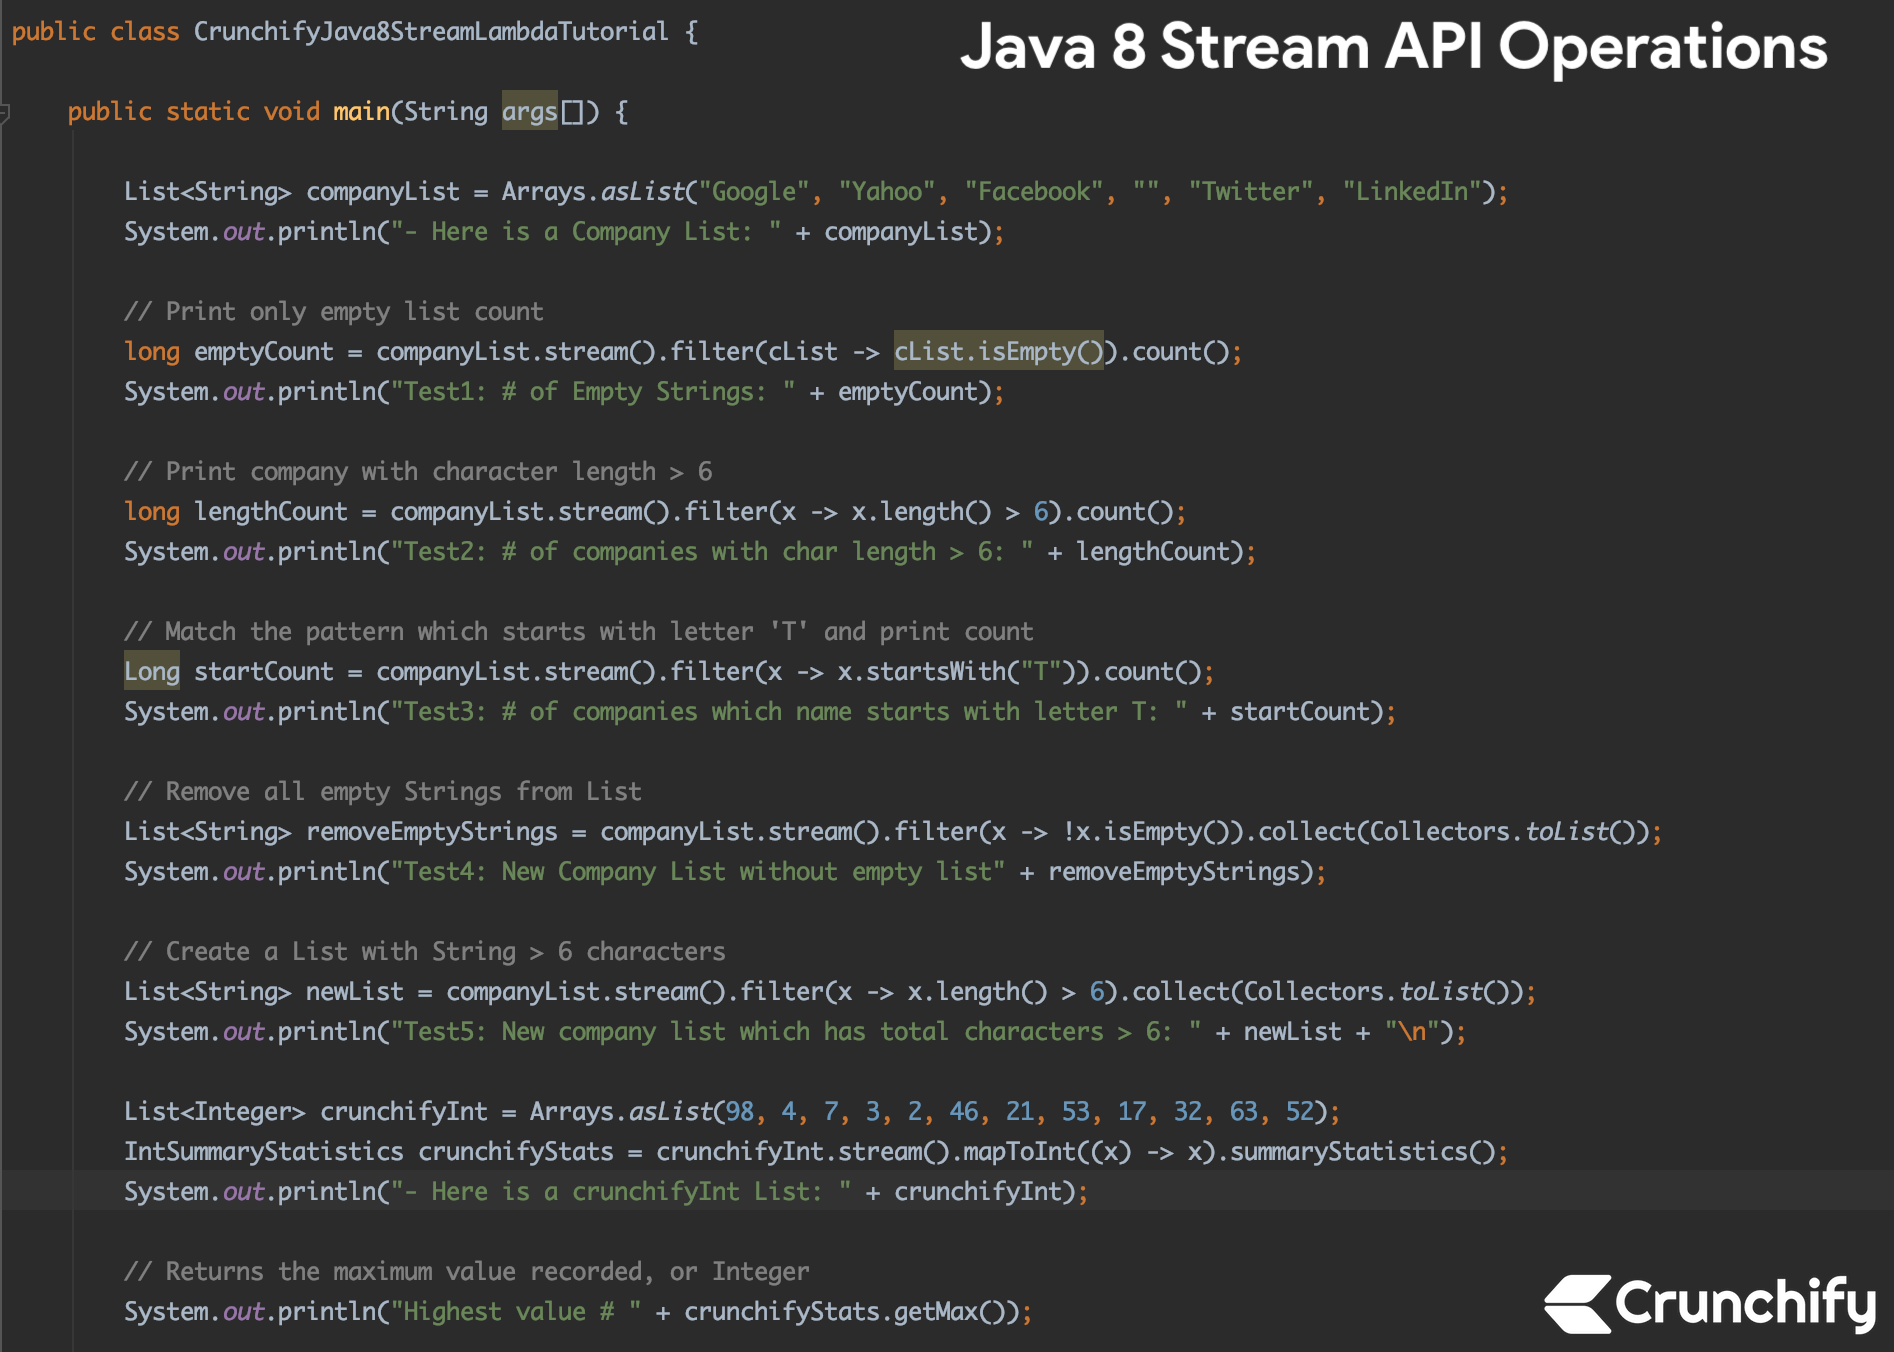 Java 8 Stream API Operations - Crunchify Tutorial